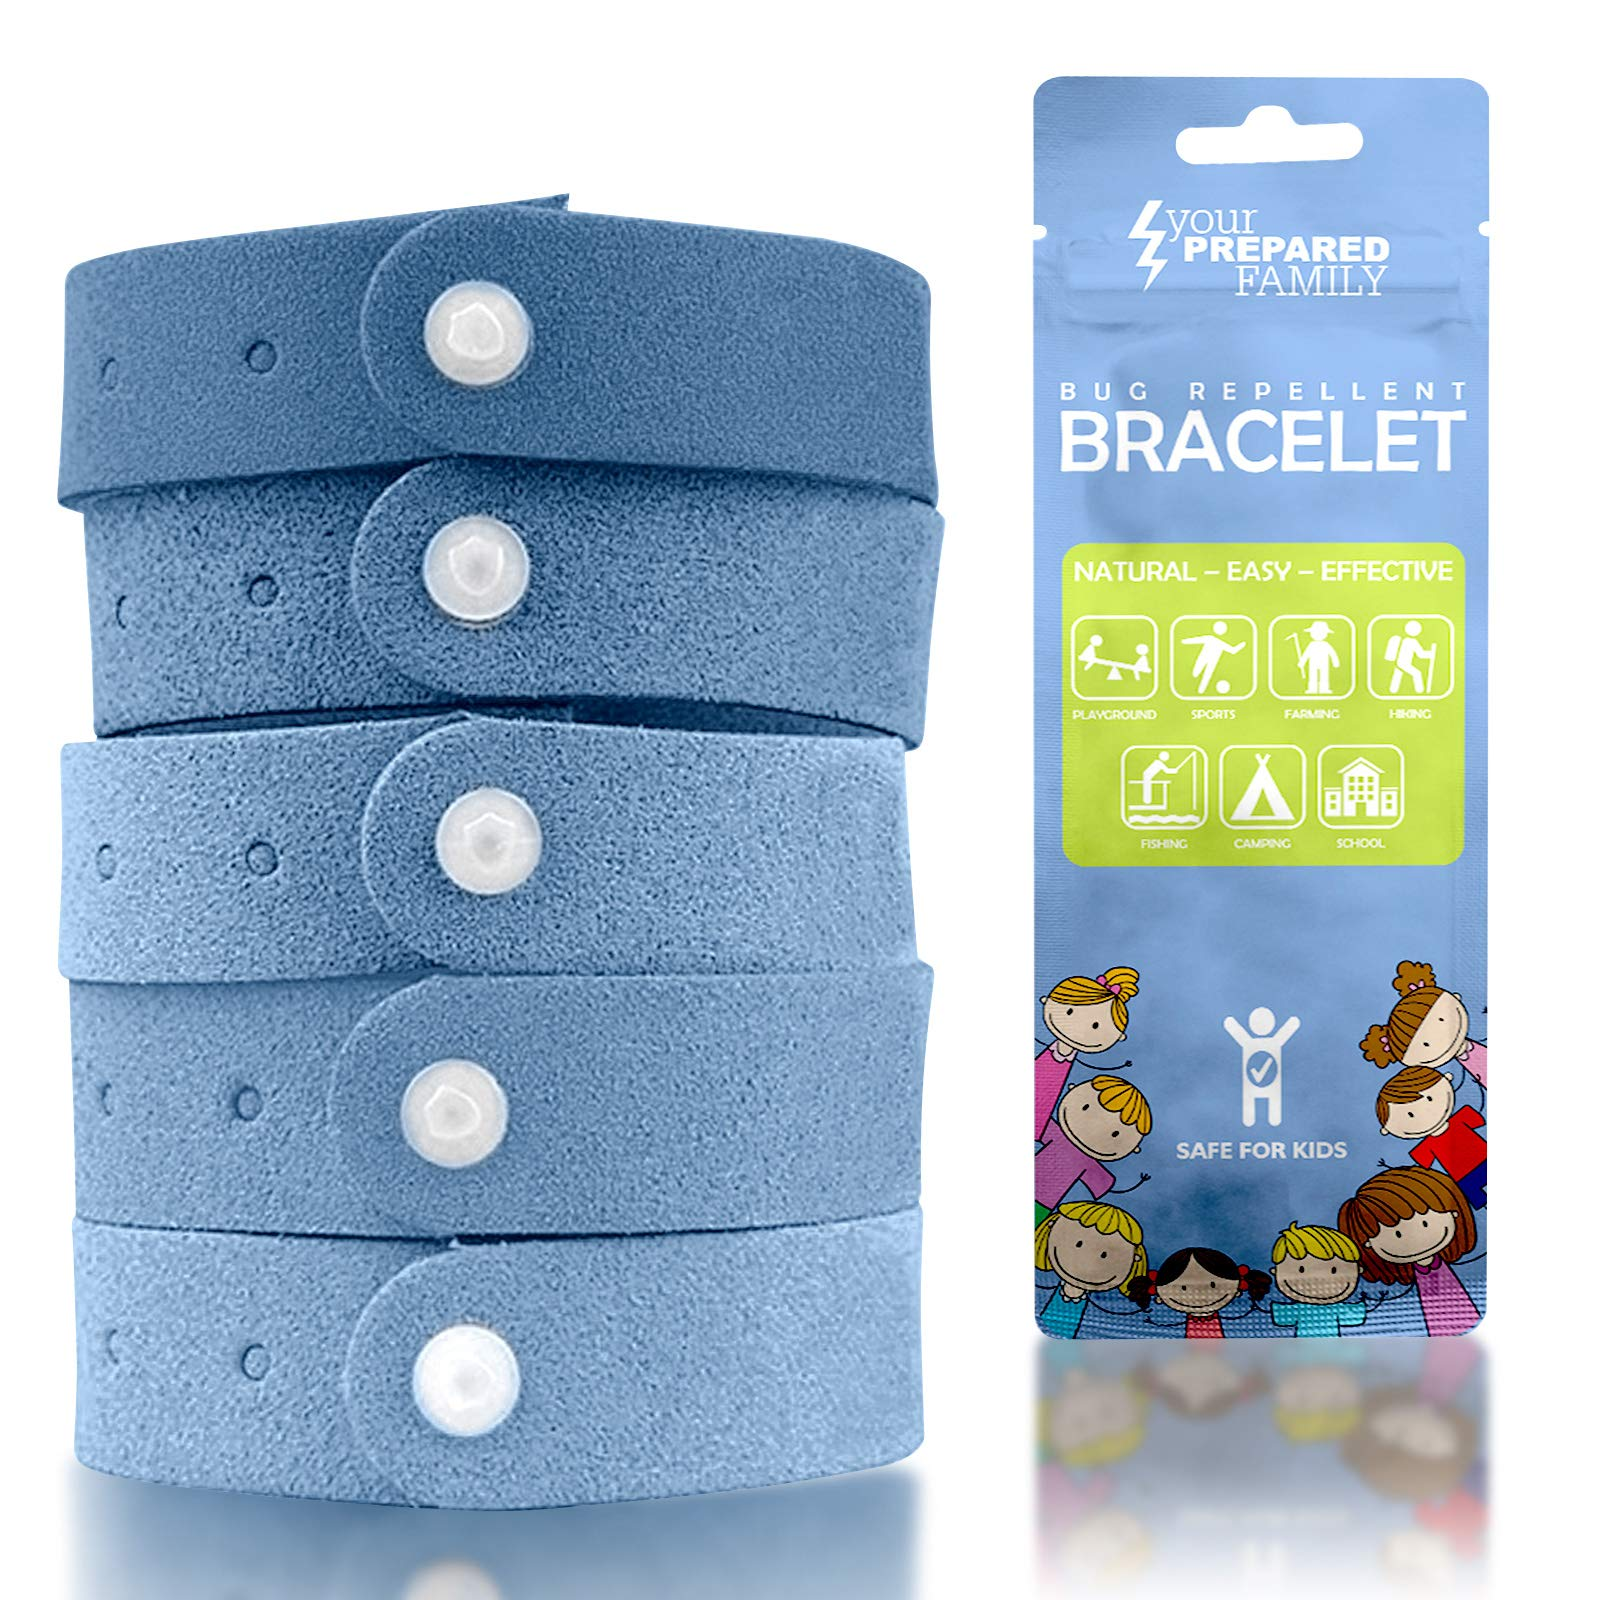 Mosquito Repellent Bracelet (10 Pack) Insect Repellent for Kids and Adults - Better Than Spray or Lotion for Outdoor Bug Protection - Travel Mosquito Repellent Bracelet is Natural and Deet Free